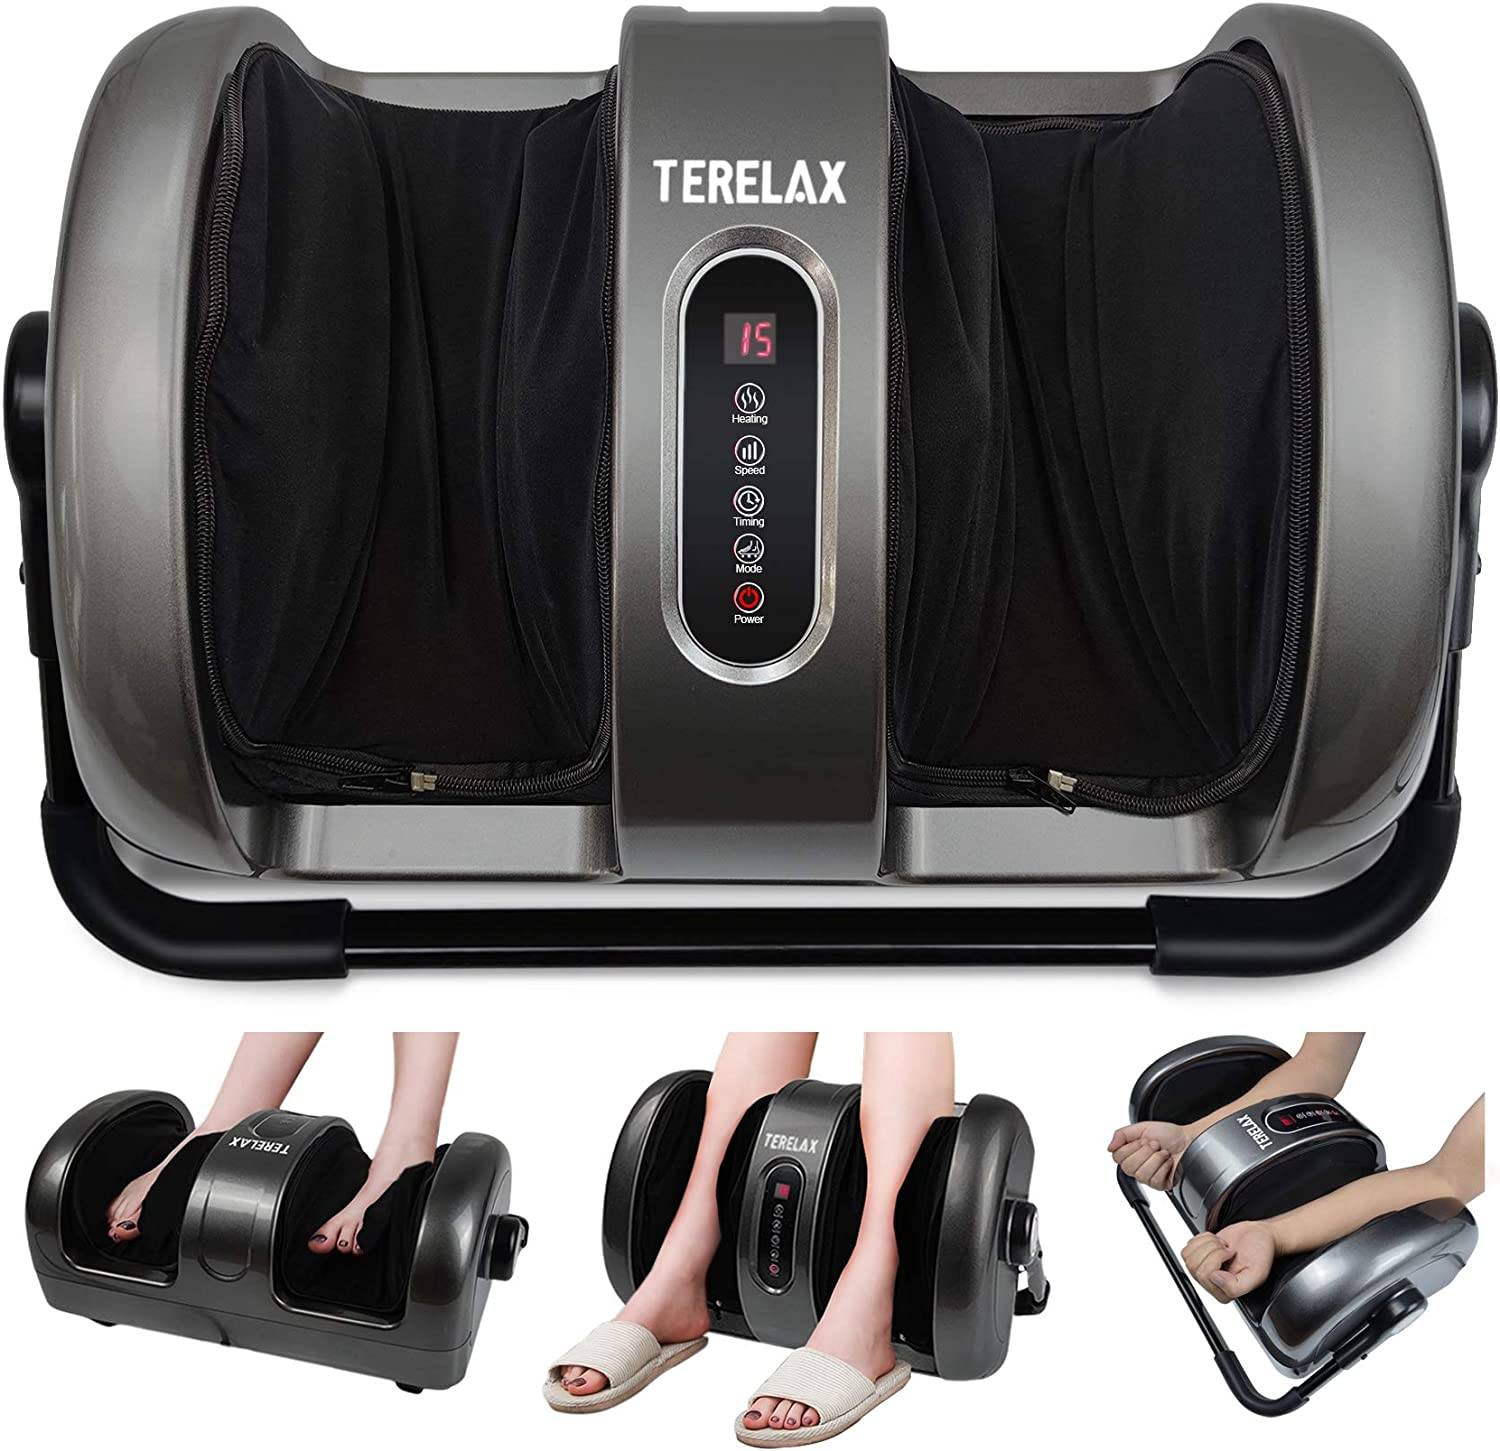 Foot Massager Machine Shiatsu Foot and Calf/Leg Massager with Heat Deep Kneading Therapy Relieve Foot Pain from Plantar Fasciitis Improve Blood Circulation by TERELAX